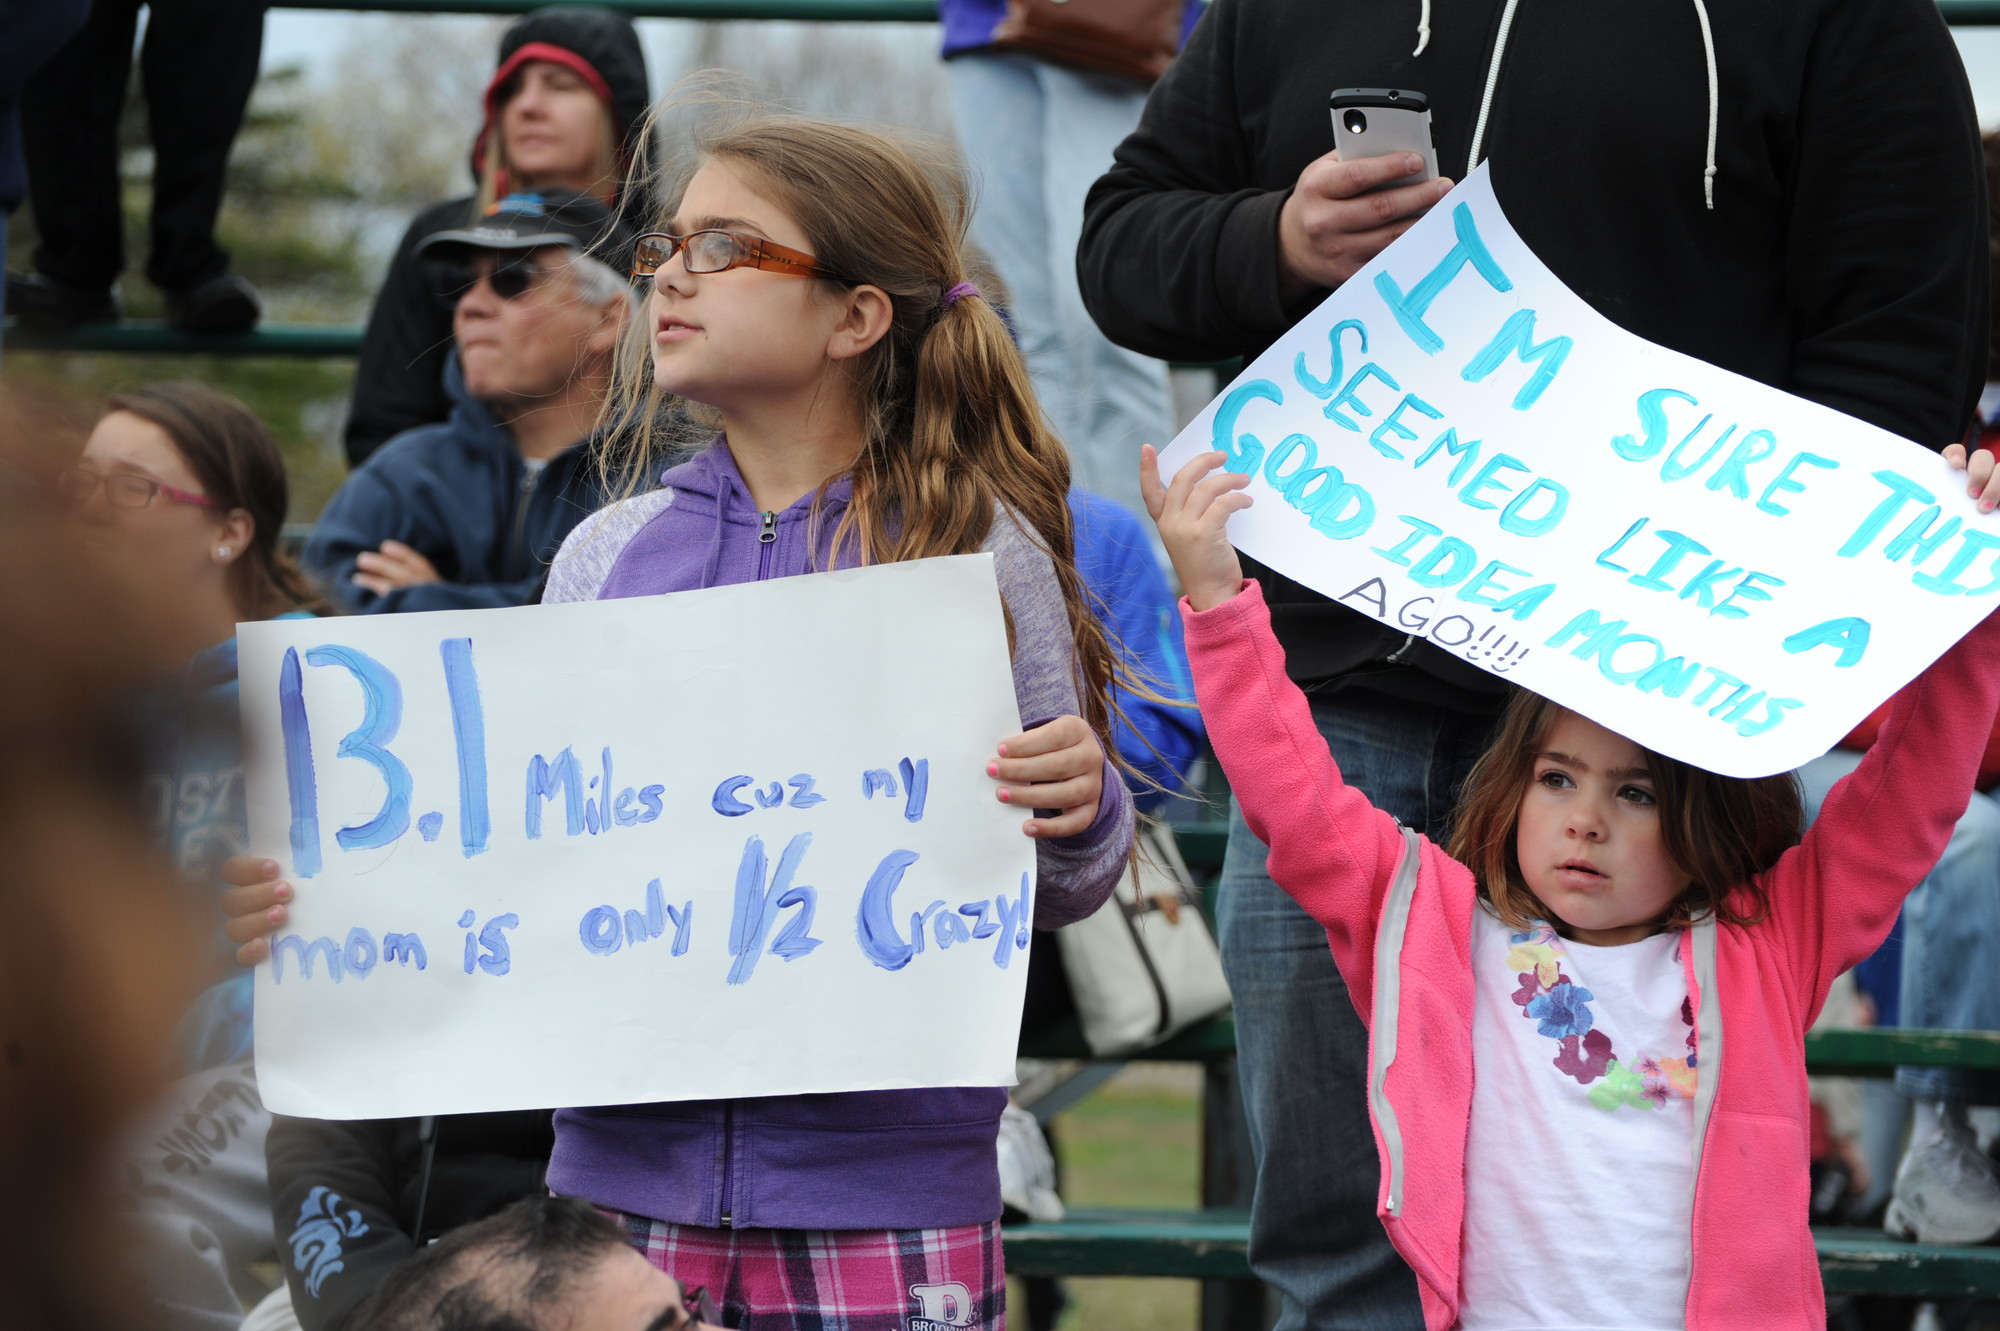 Julia Monte, 9, and sister Carly, 5, held signs of encouragement ... sort of.